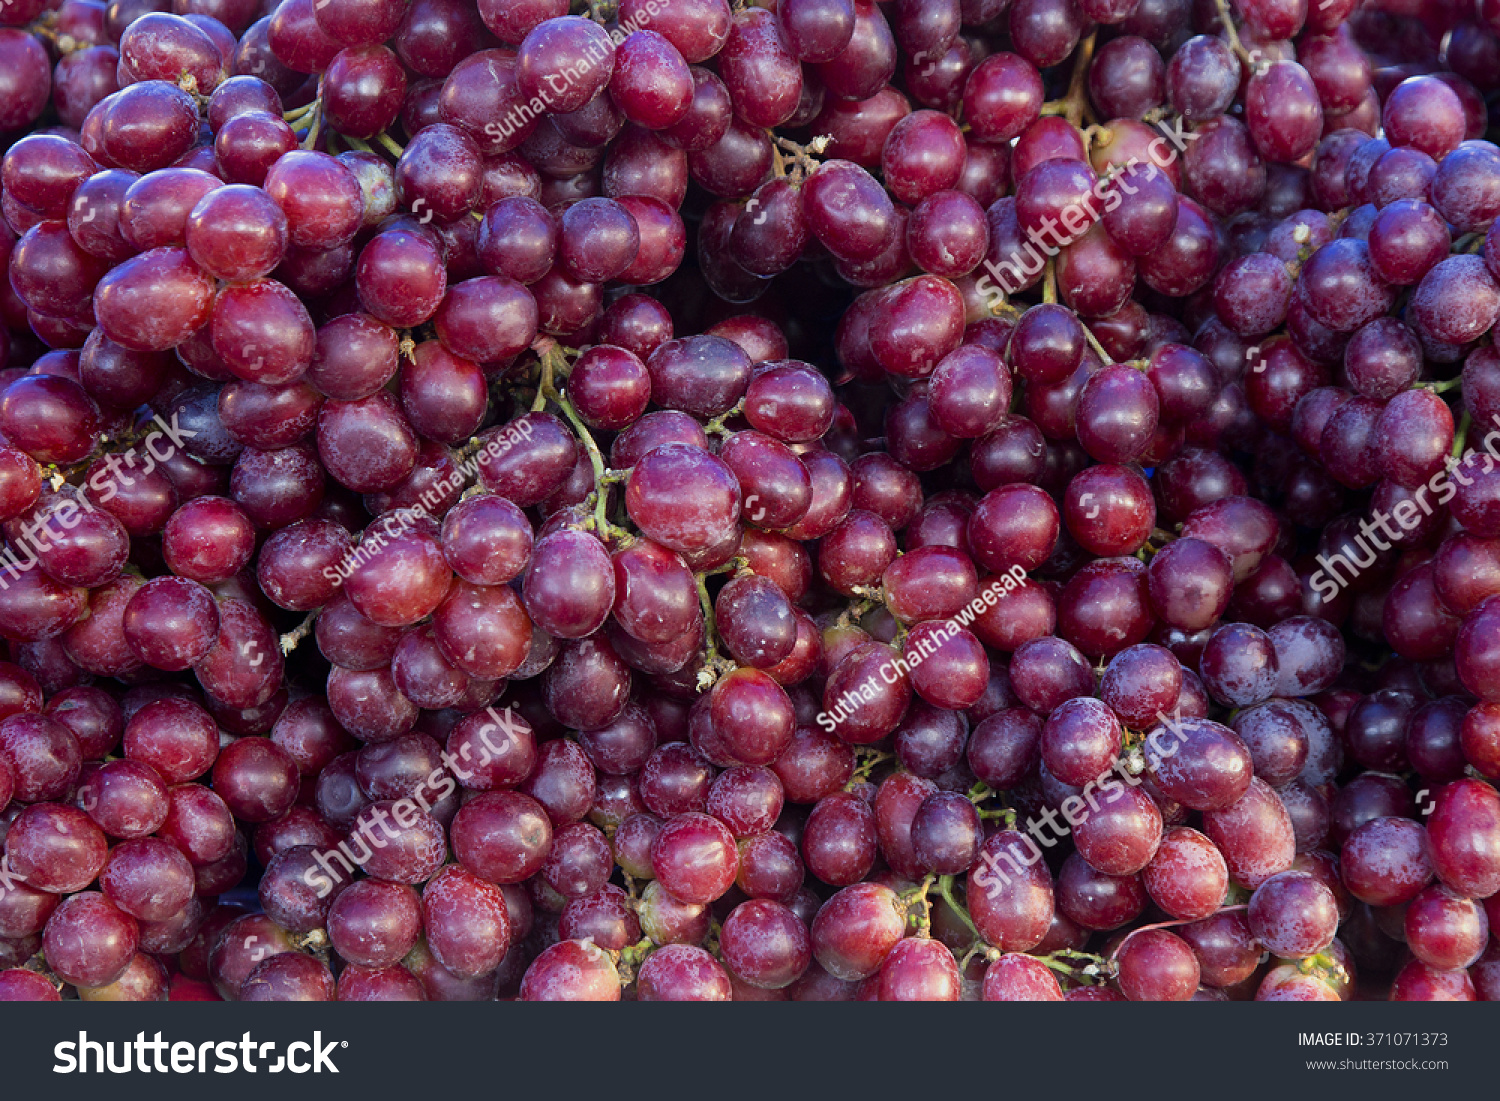 Red Wine Grapes Background Dark Grapes Stock Photo ...